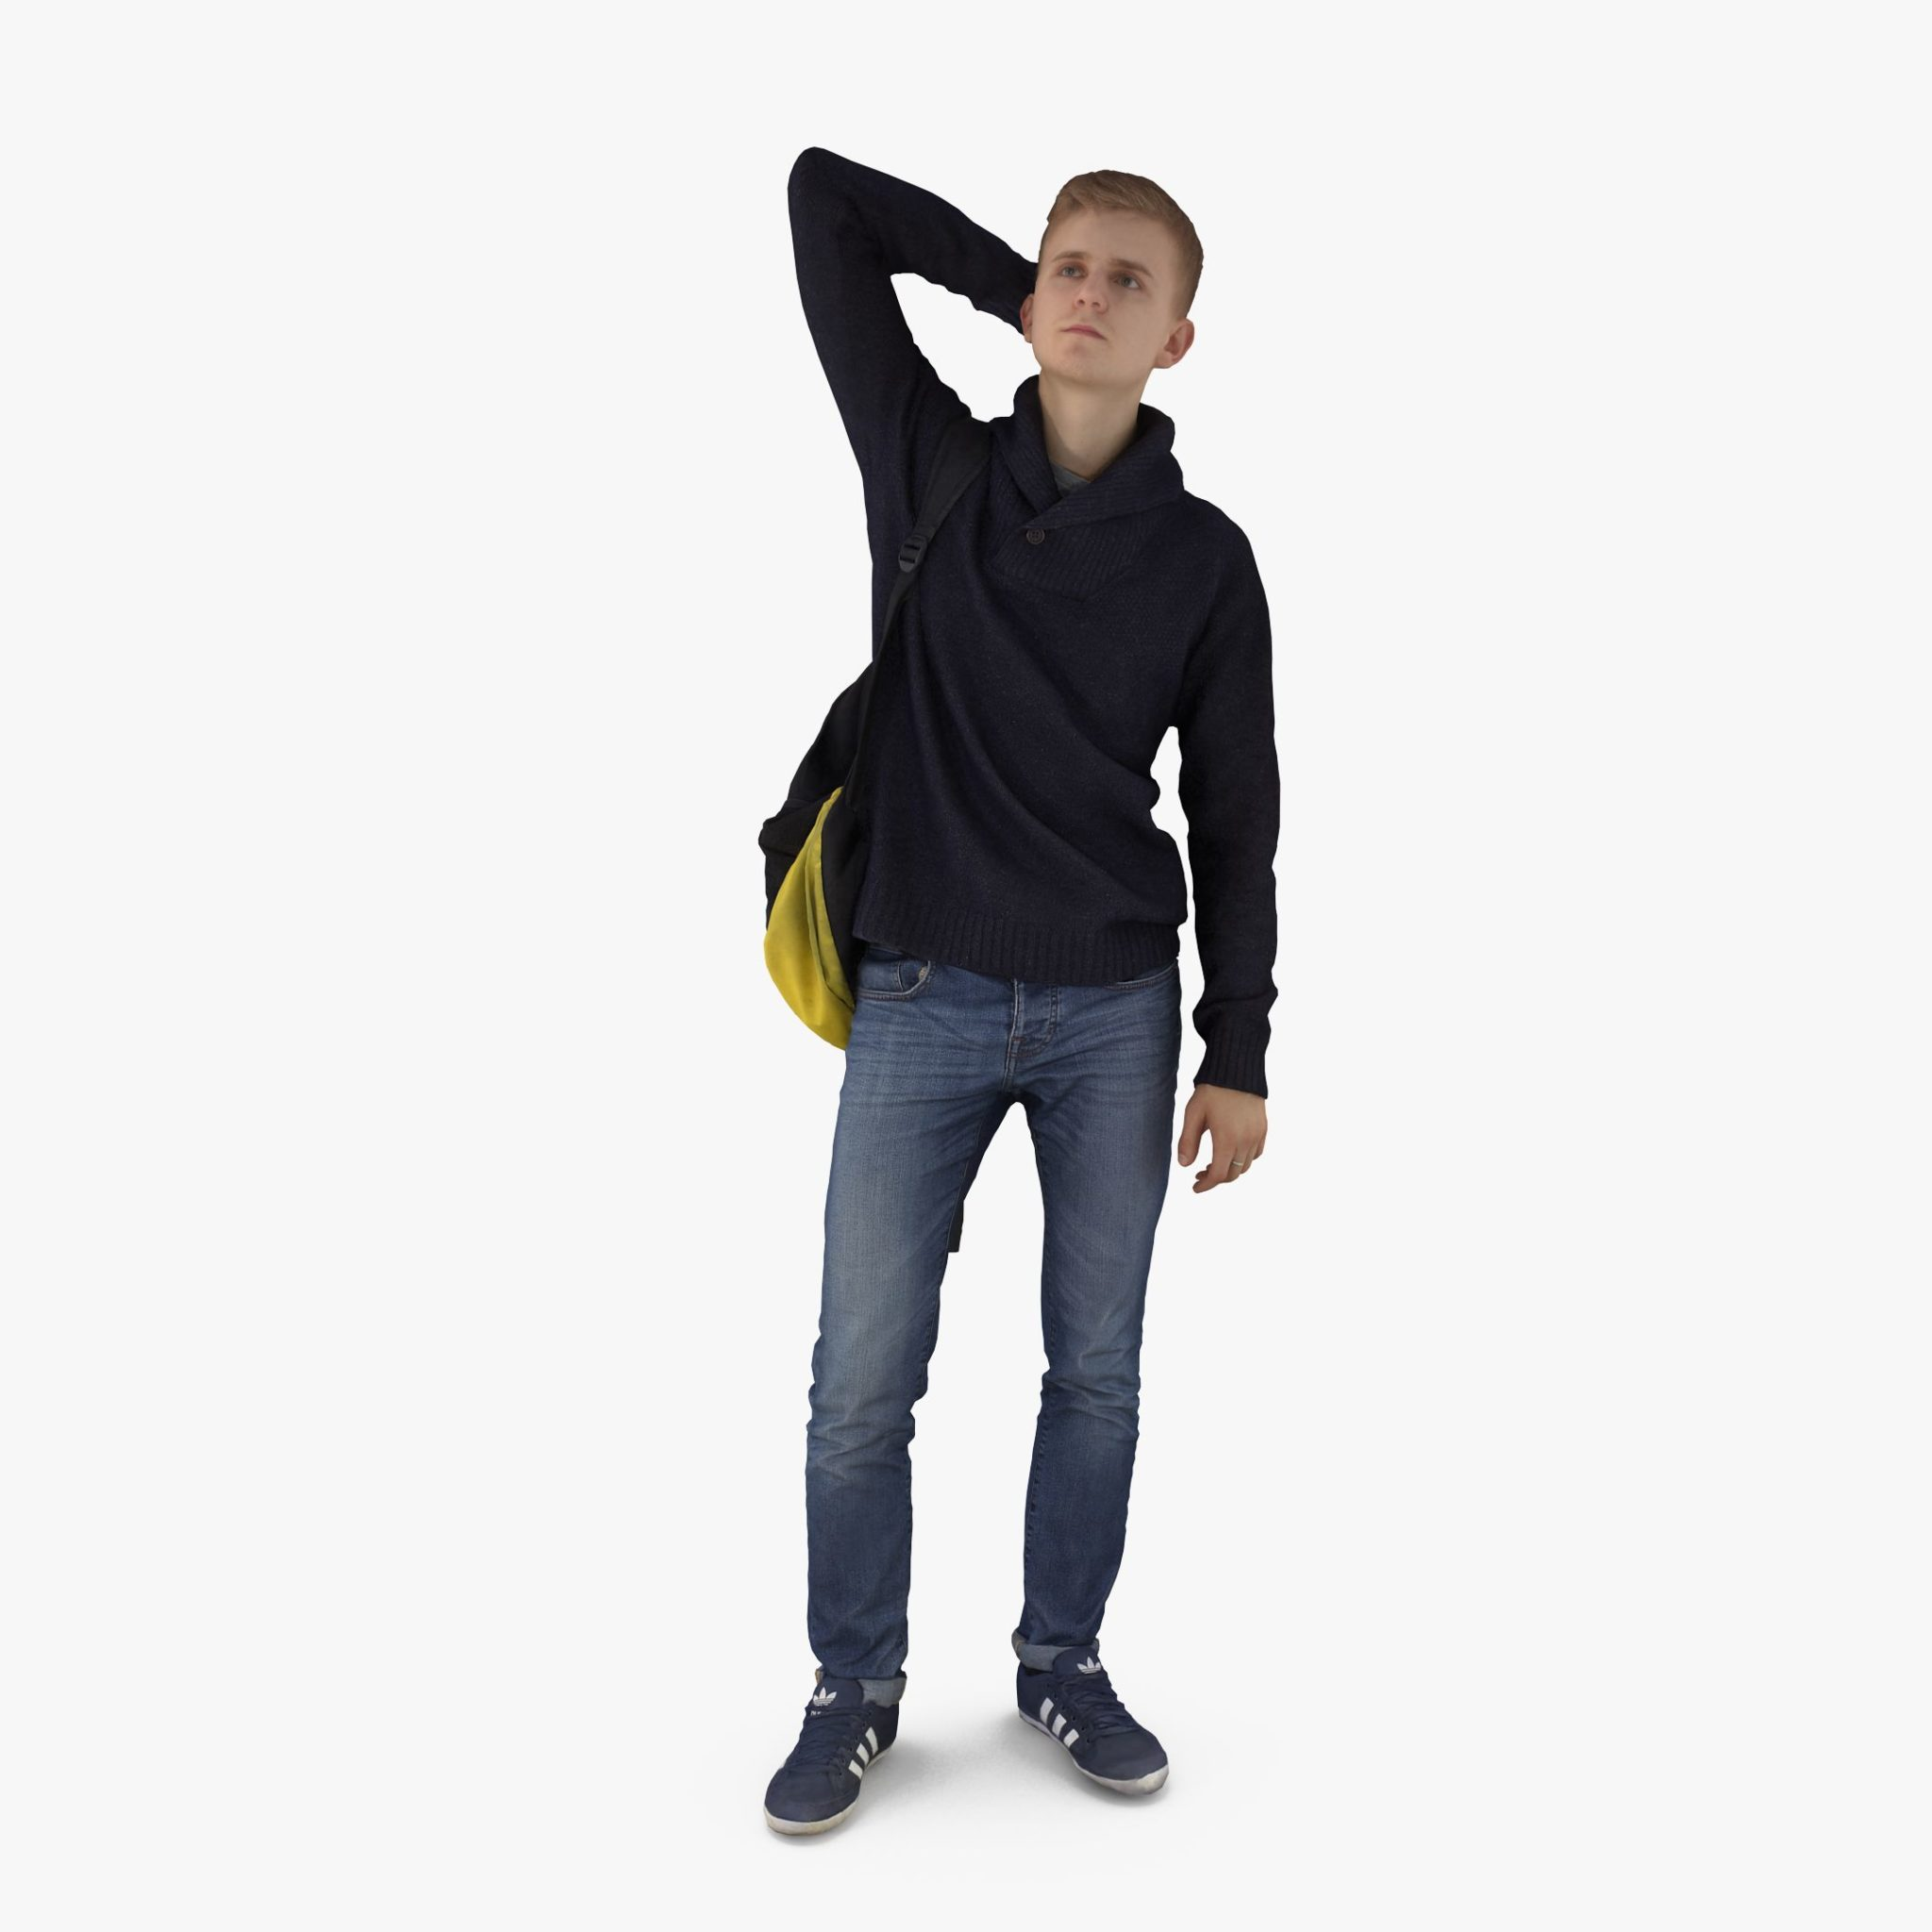 Casual Man with Bag 3D Model | 3DTree Scanning Studio